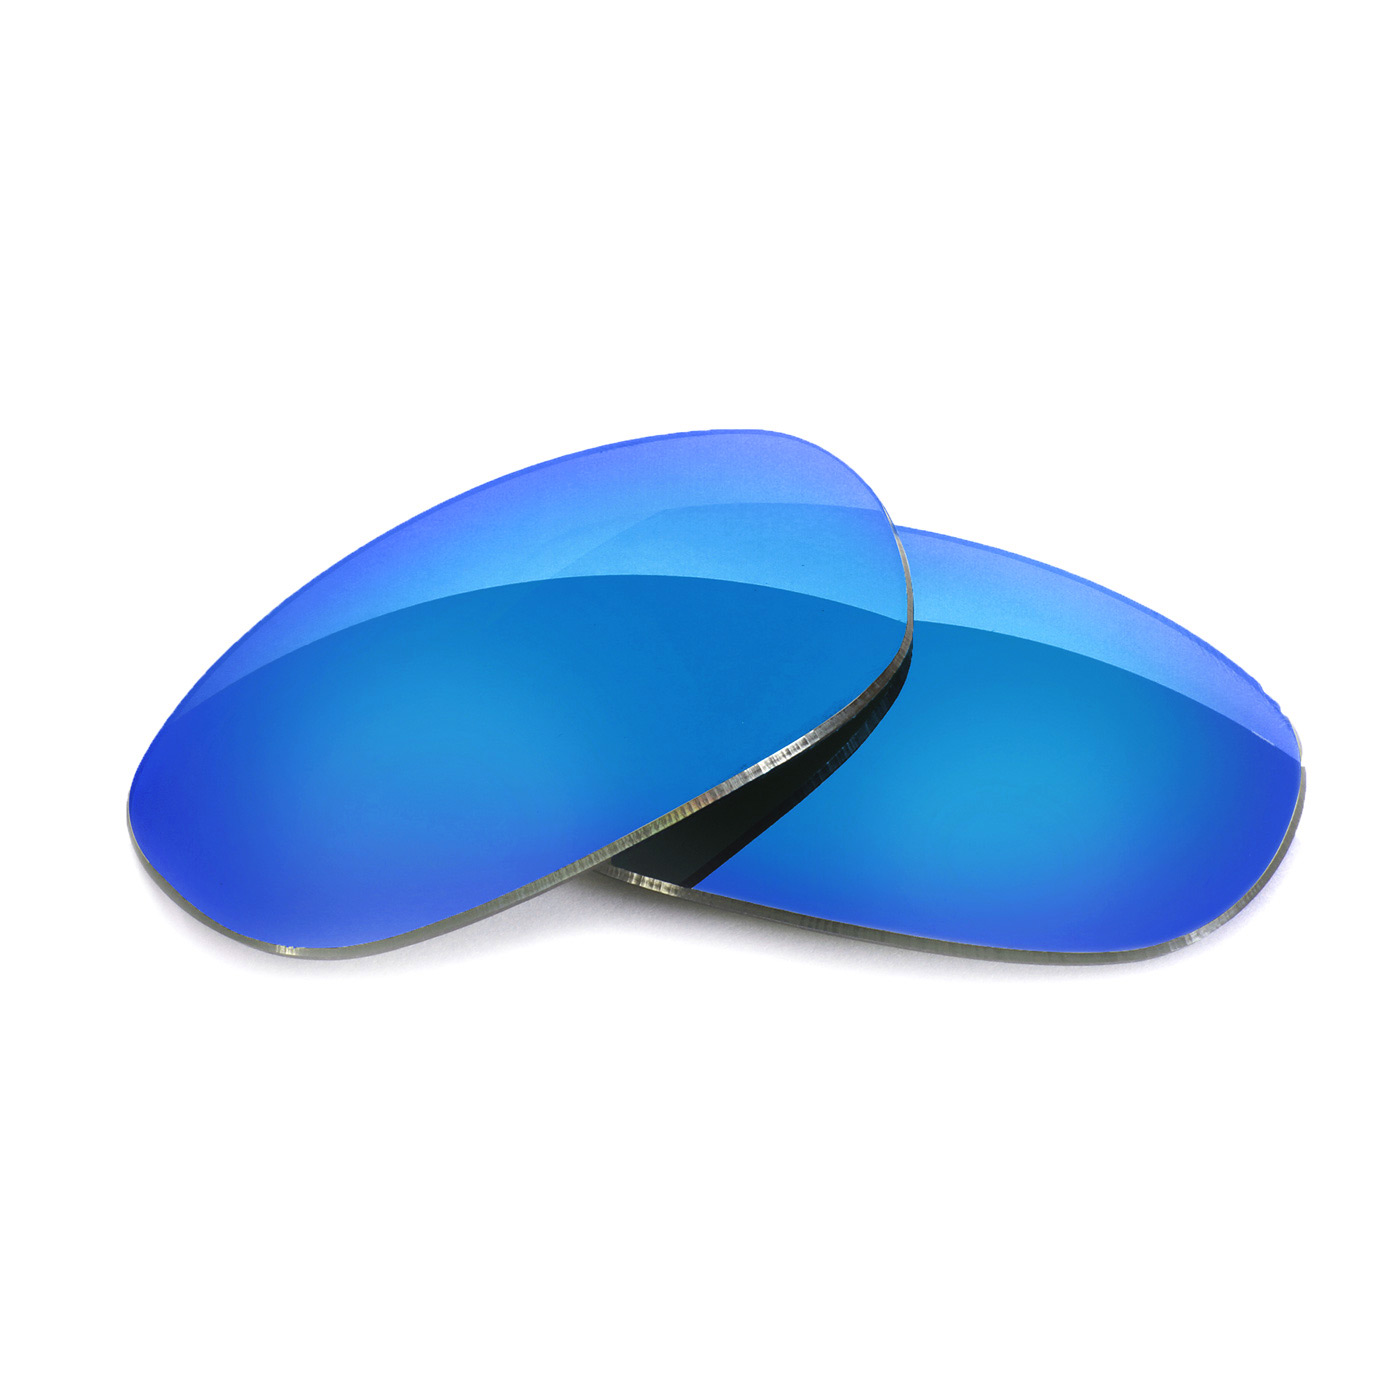 Fuse Lenses Polarized Replacement Lenses for Costa Del Mar Hammerhead